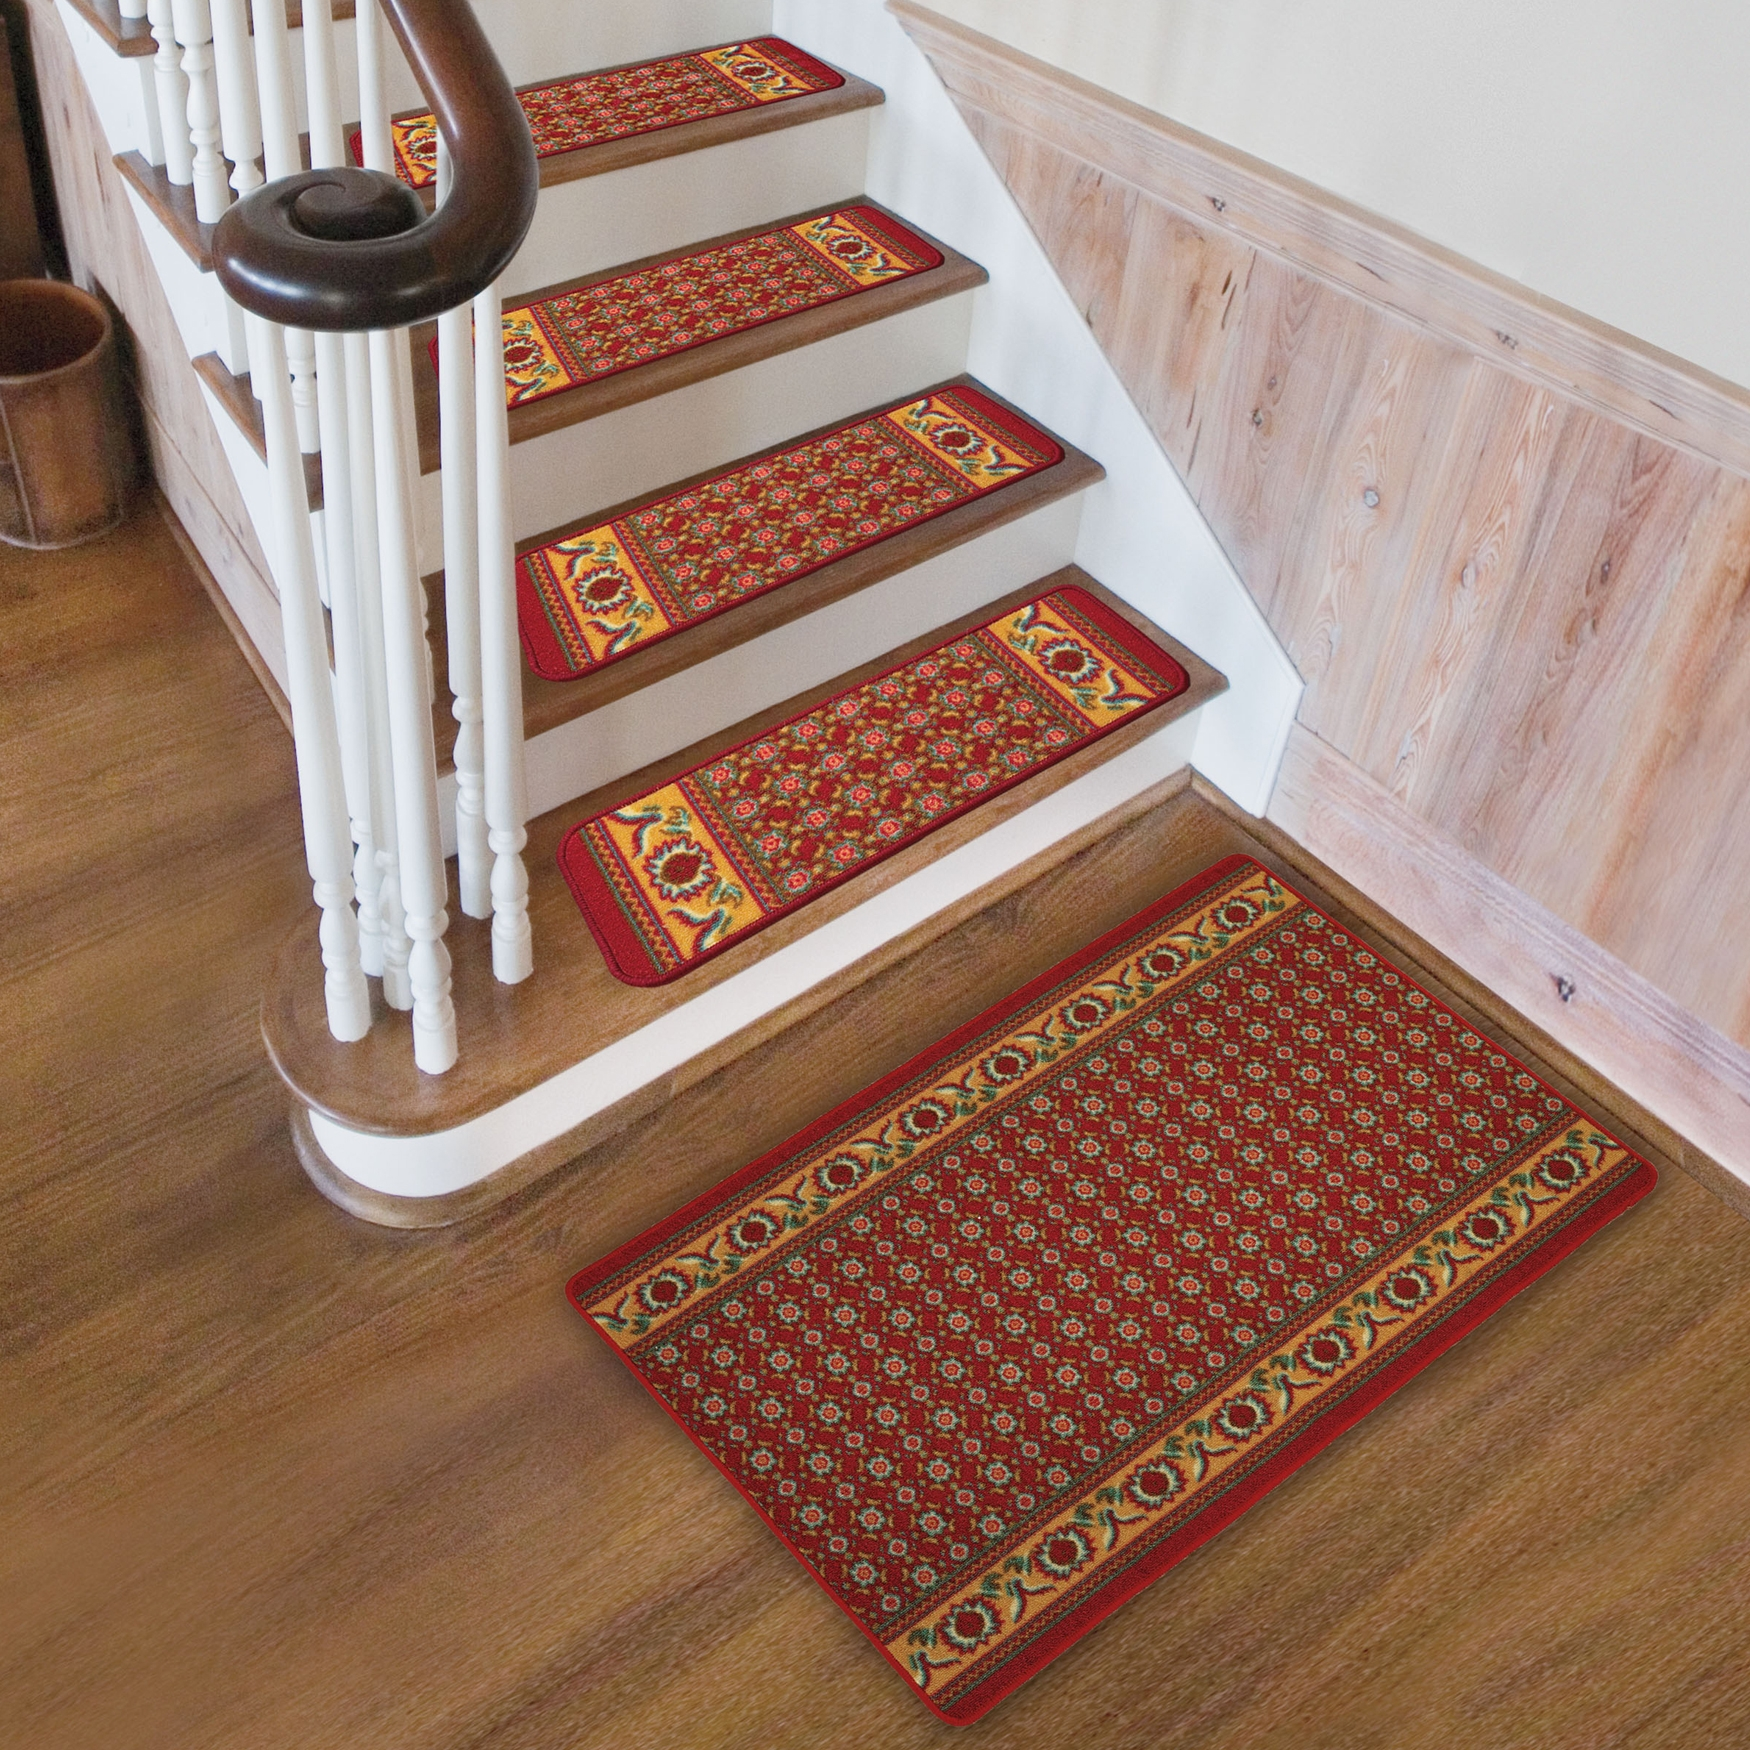 Entry Mudroom Wondrous Carpet Stair Treads With Classic Colors Within Stair Tread Rugs Indoor (Image 4 of 15)